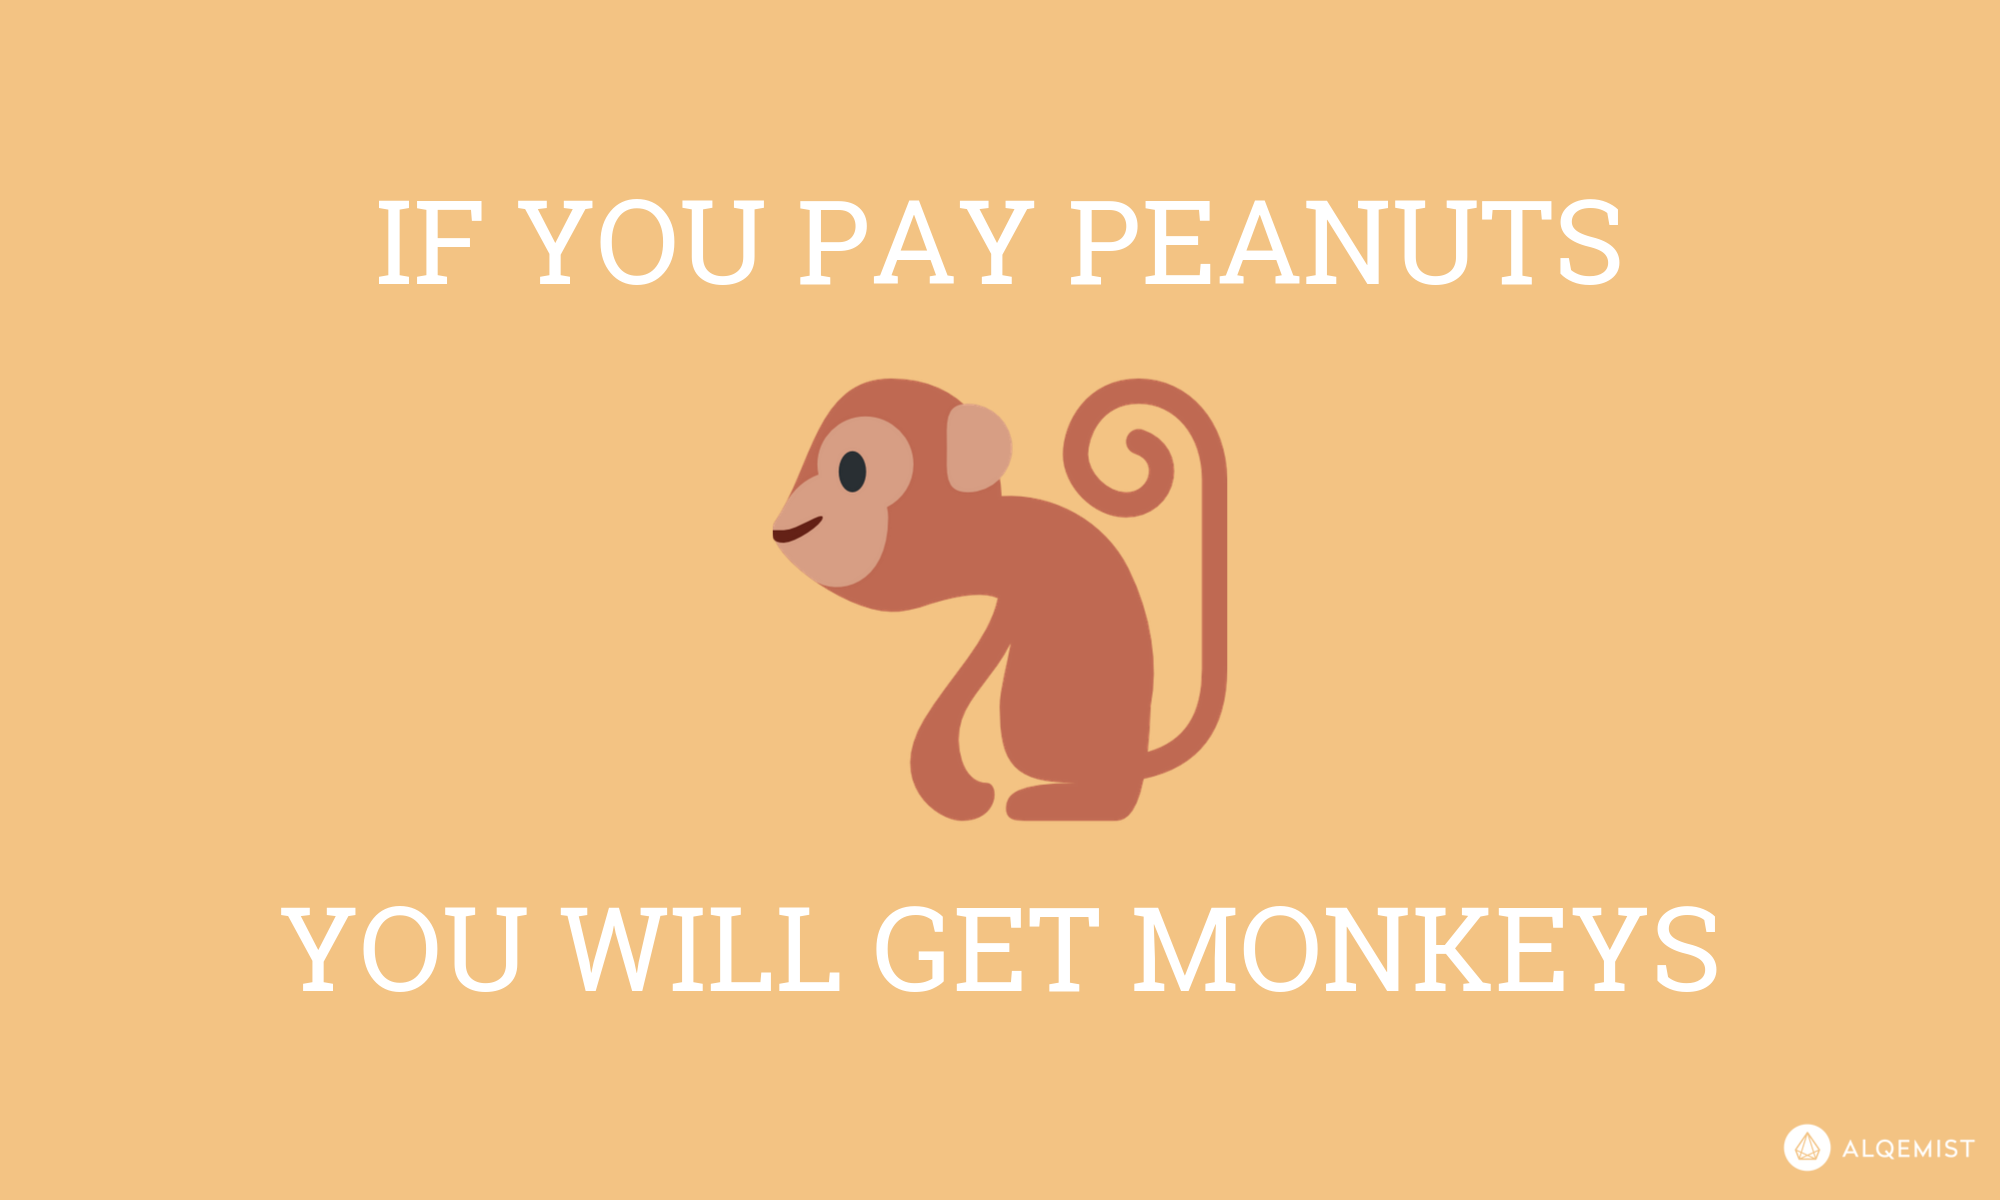 If you pay peanuts you will get monkeys